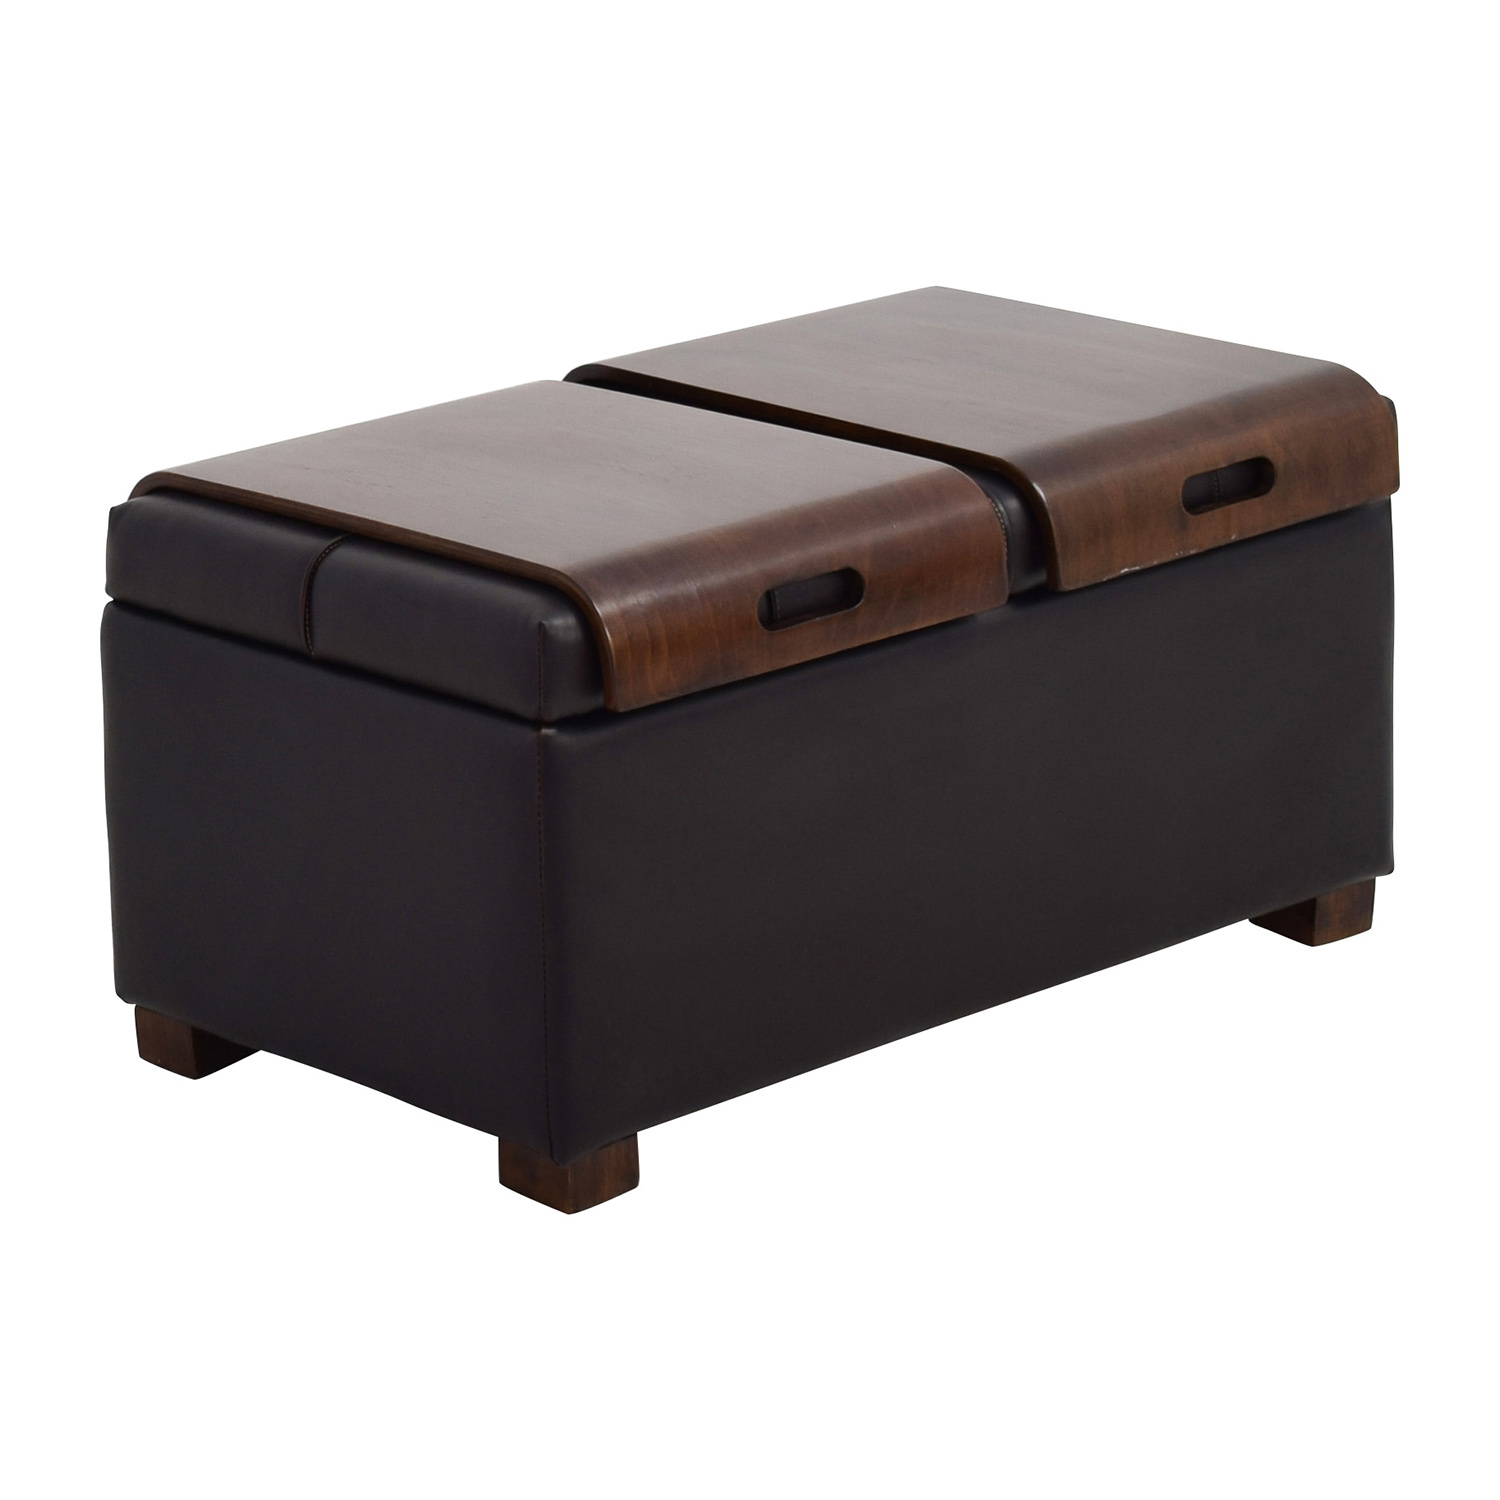 39 off raymour and flanigan raymour flanigan storage ottoman with two trays chairs. Black Bedroom Furniture Sets. Home Design Ideas